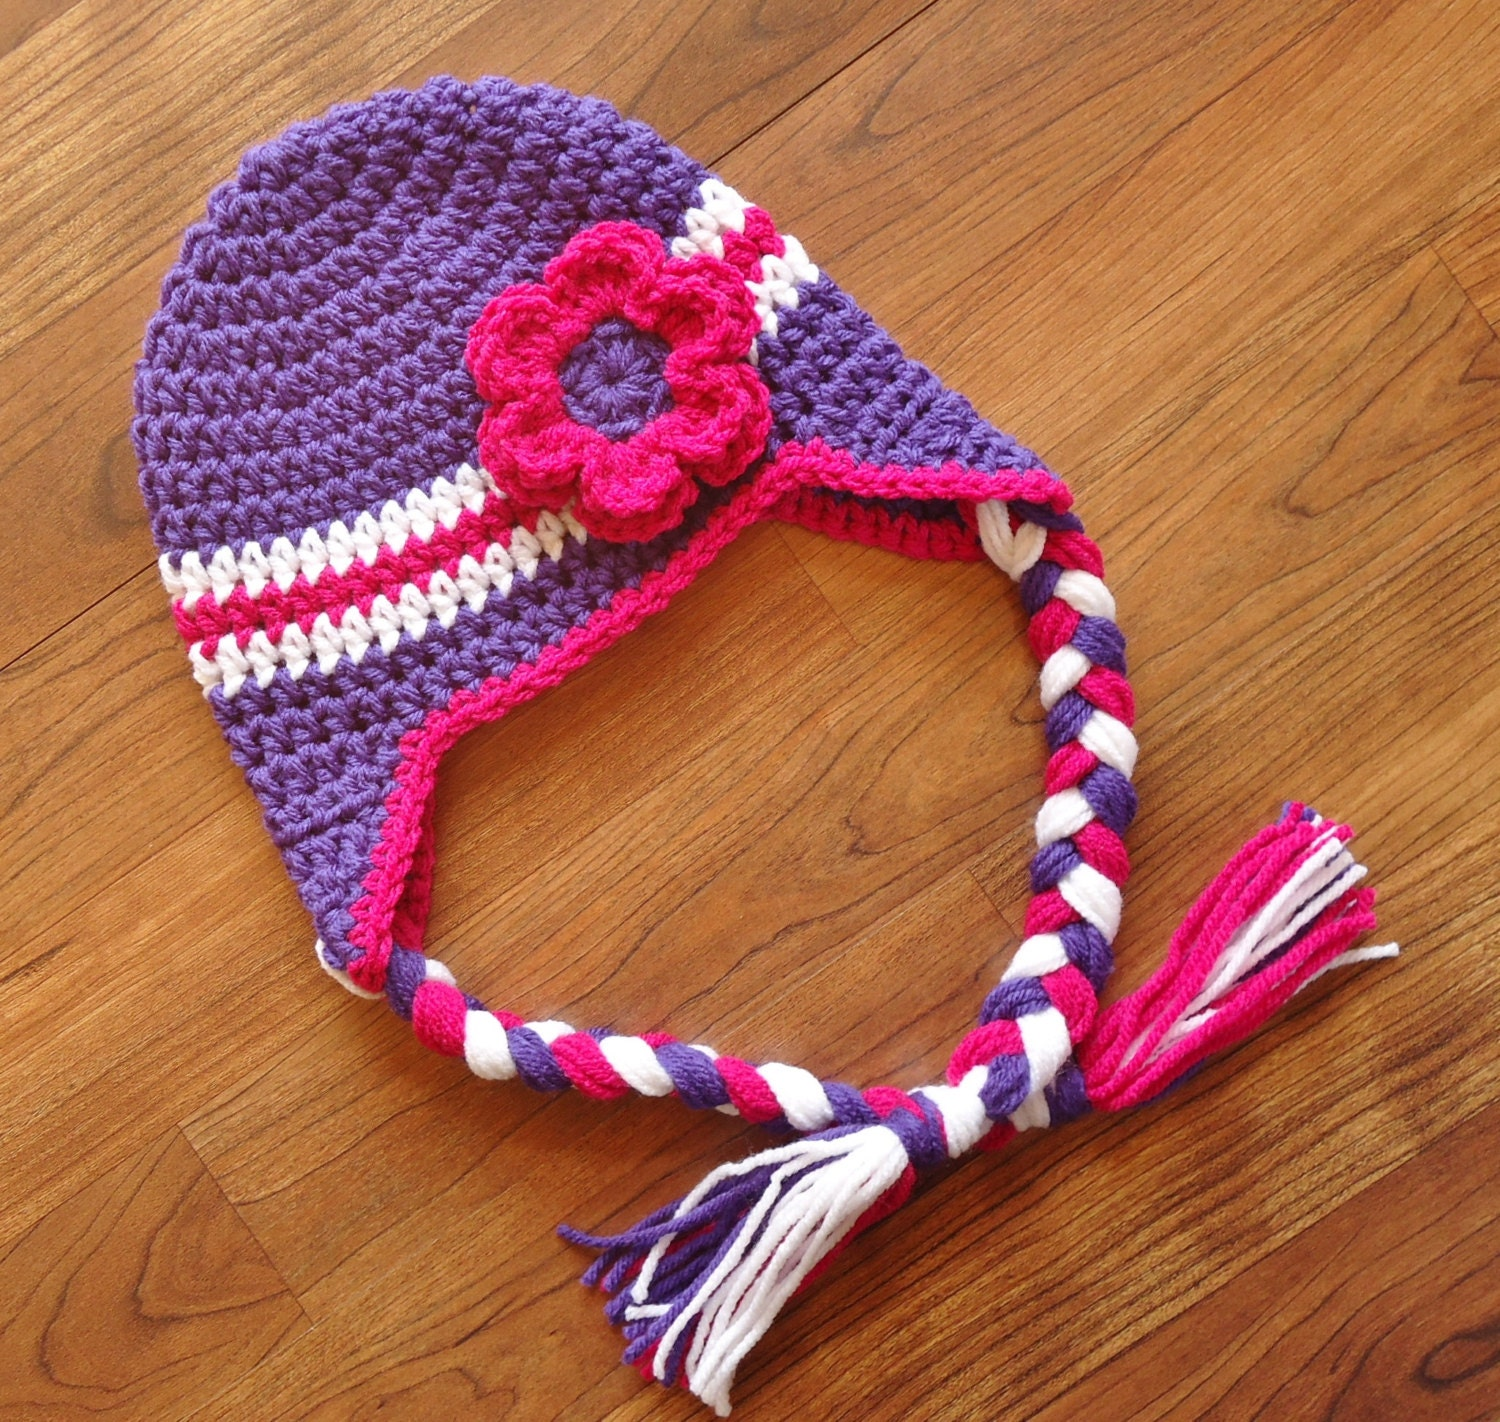 ef1f567c6 Crocheted Baby Girl Ear Flap Hat with Braided Ties and Flower ...